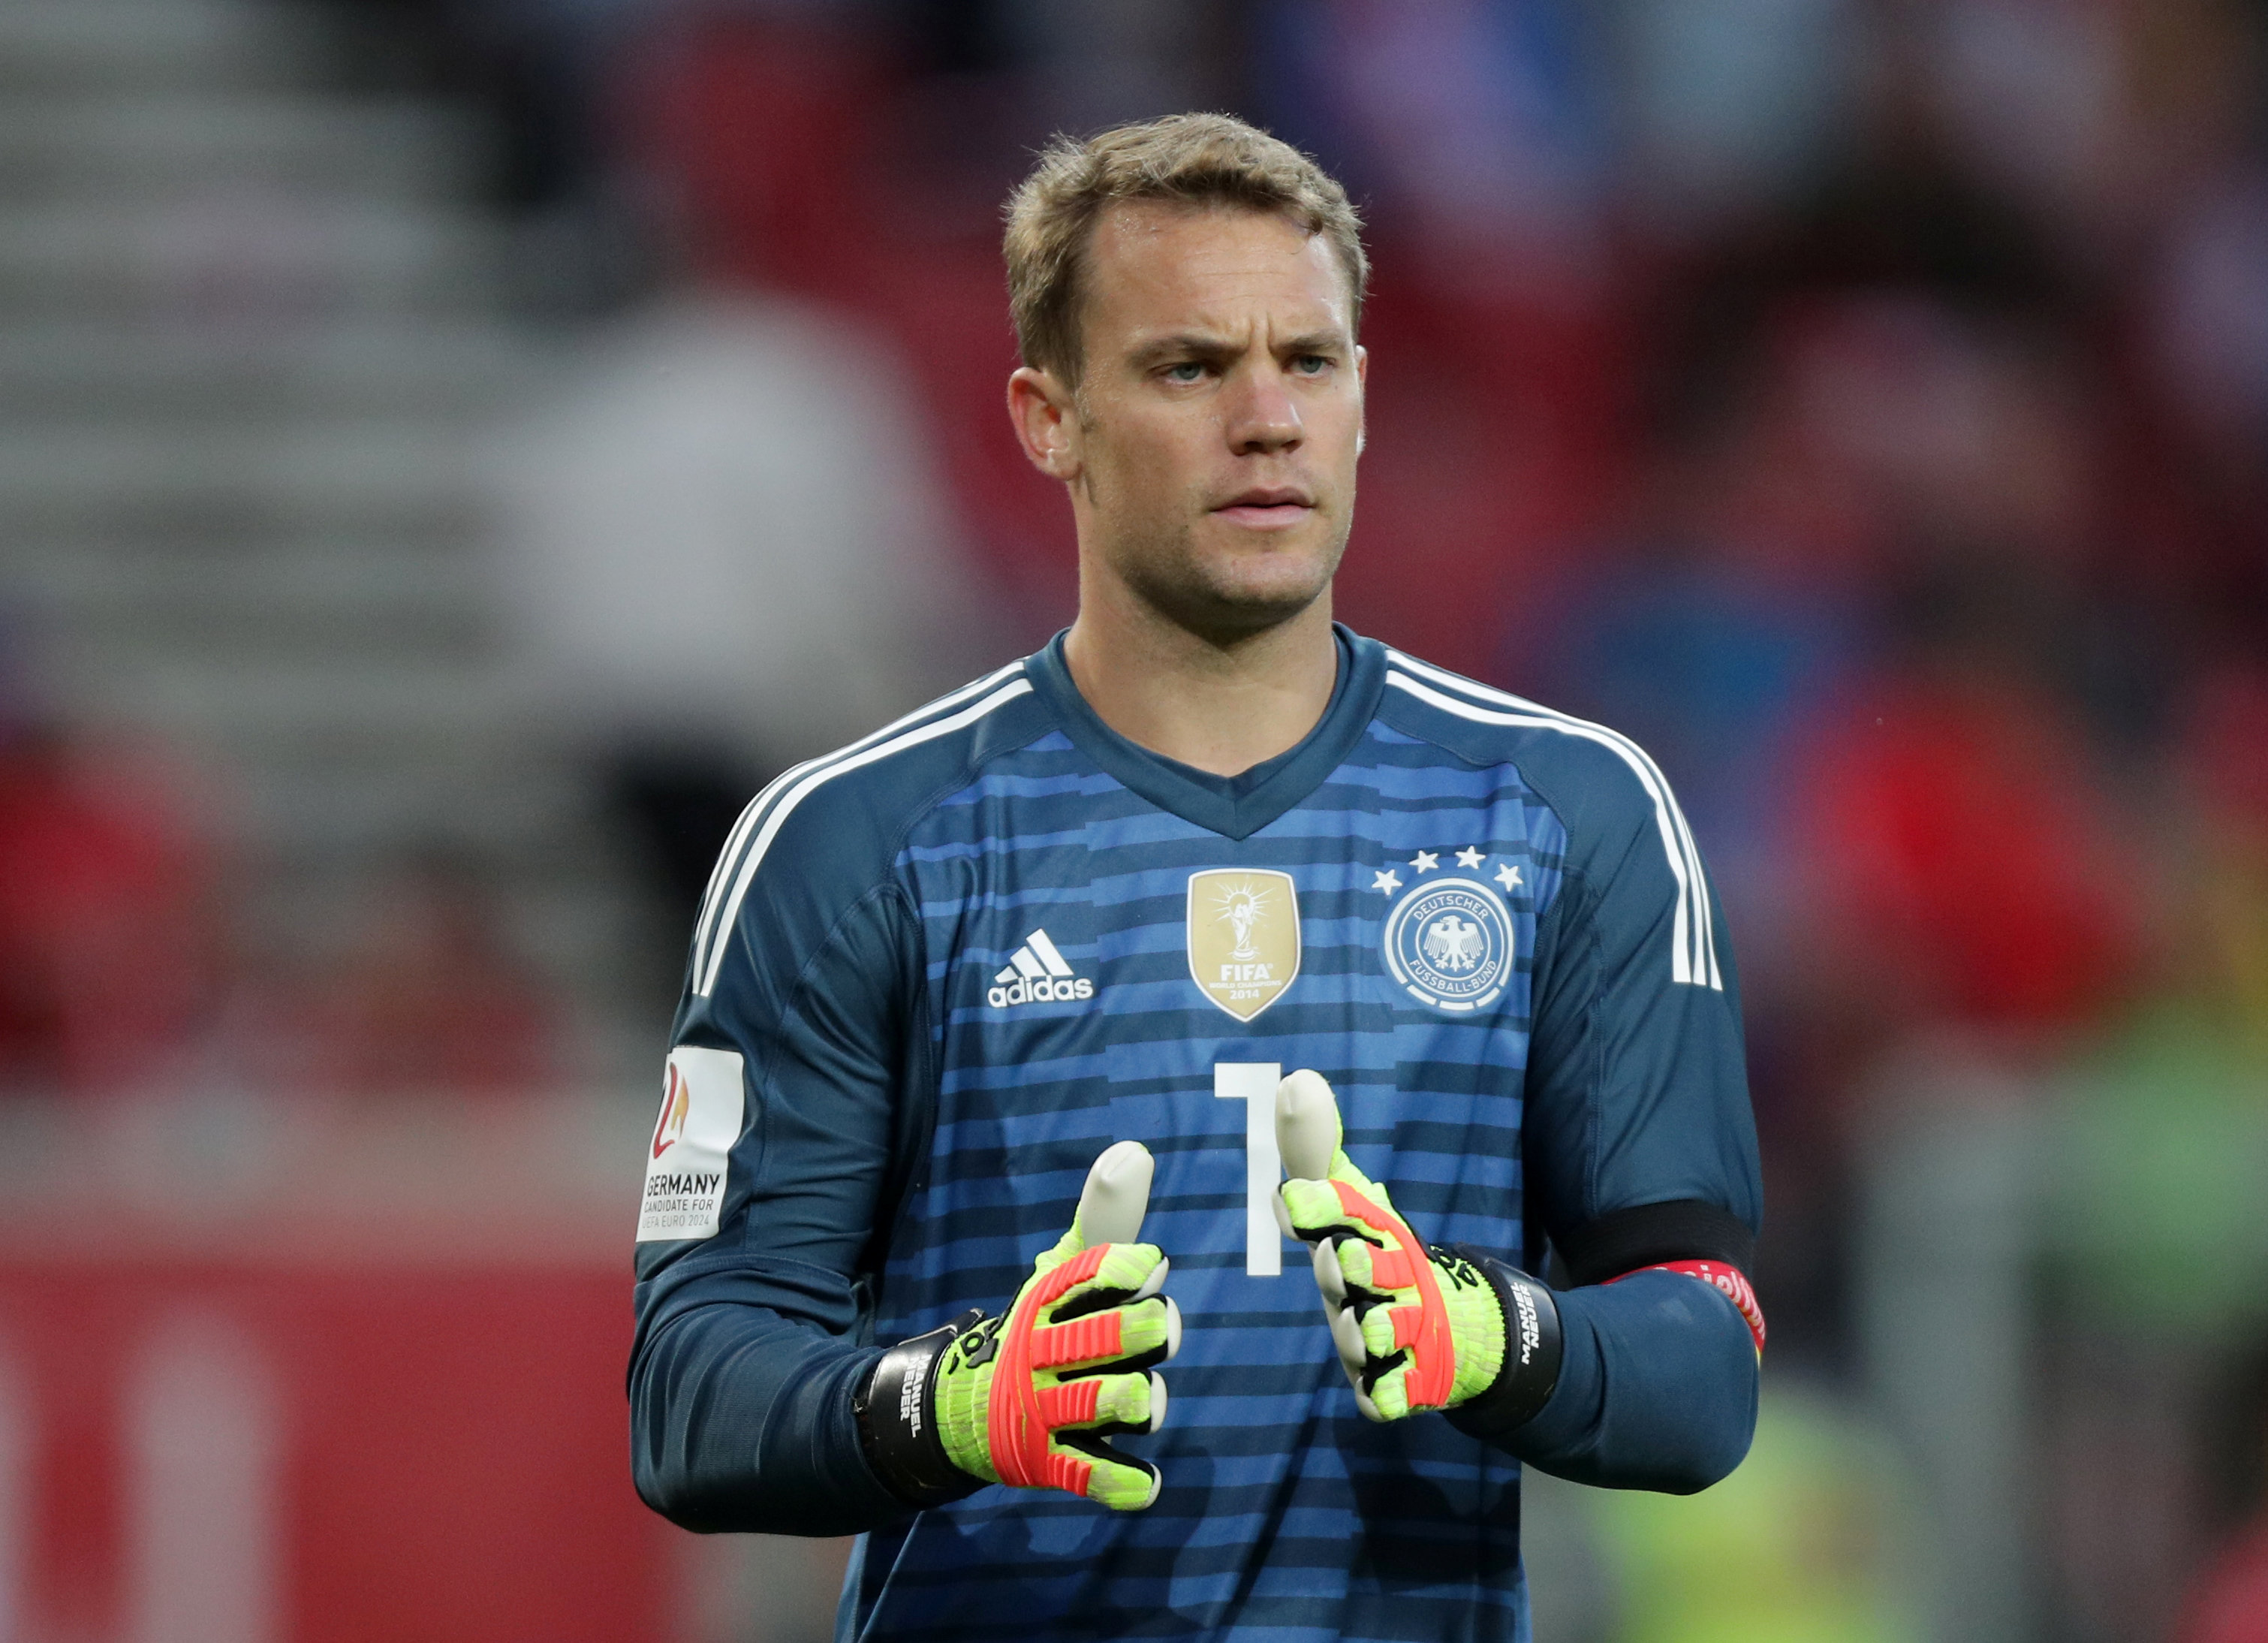 Germany Manuel Neuer 2018 FIFA World Cup All 32 Team Squads and captains